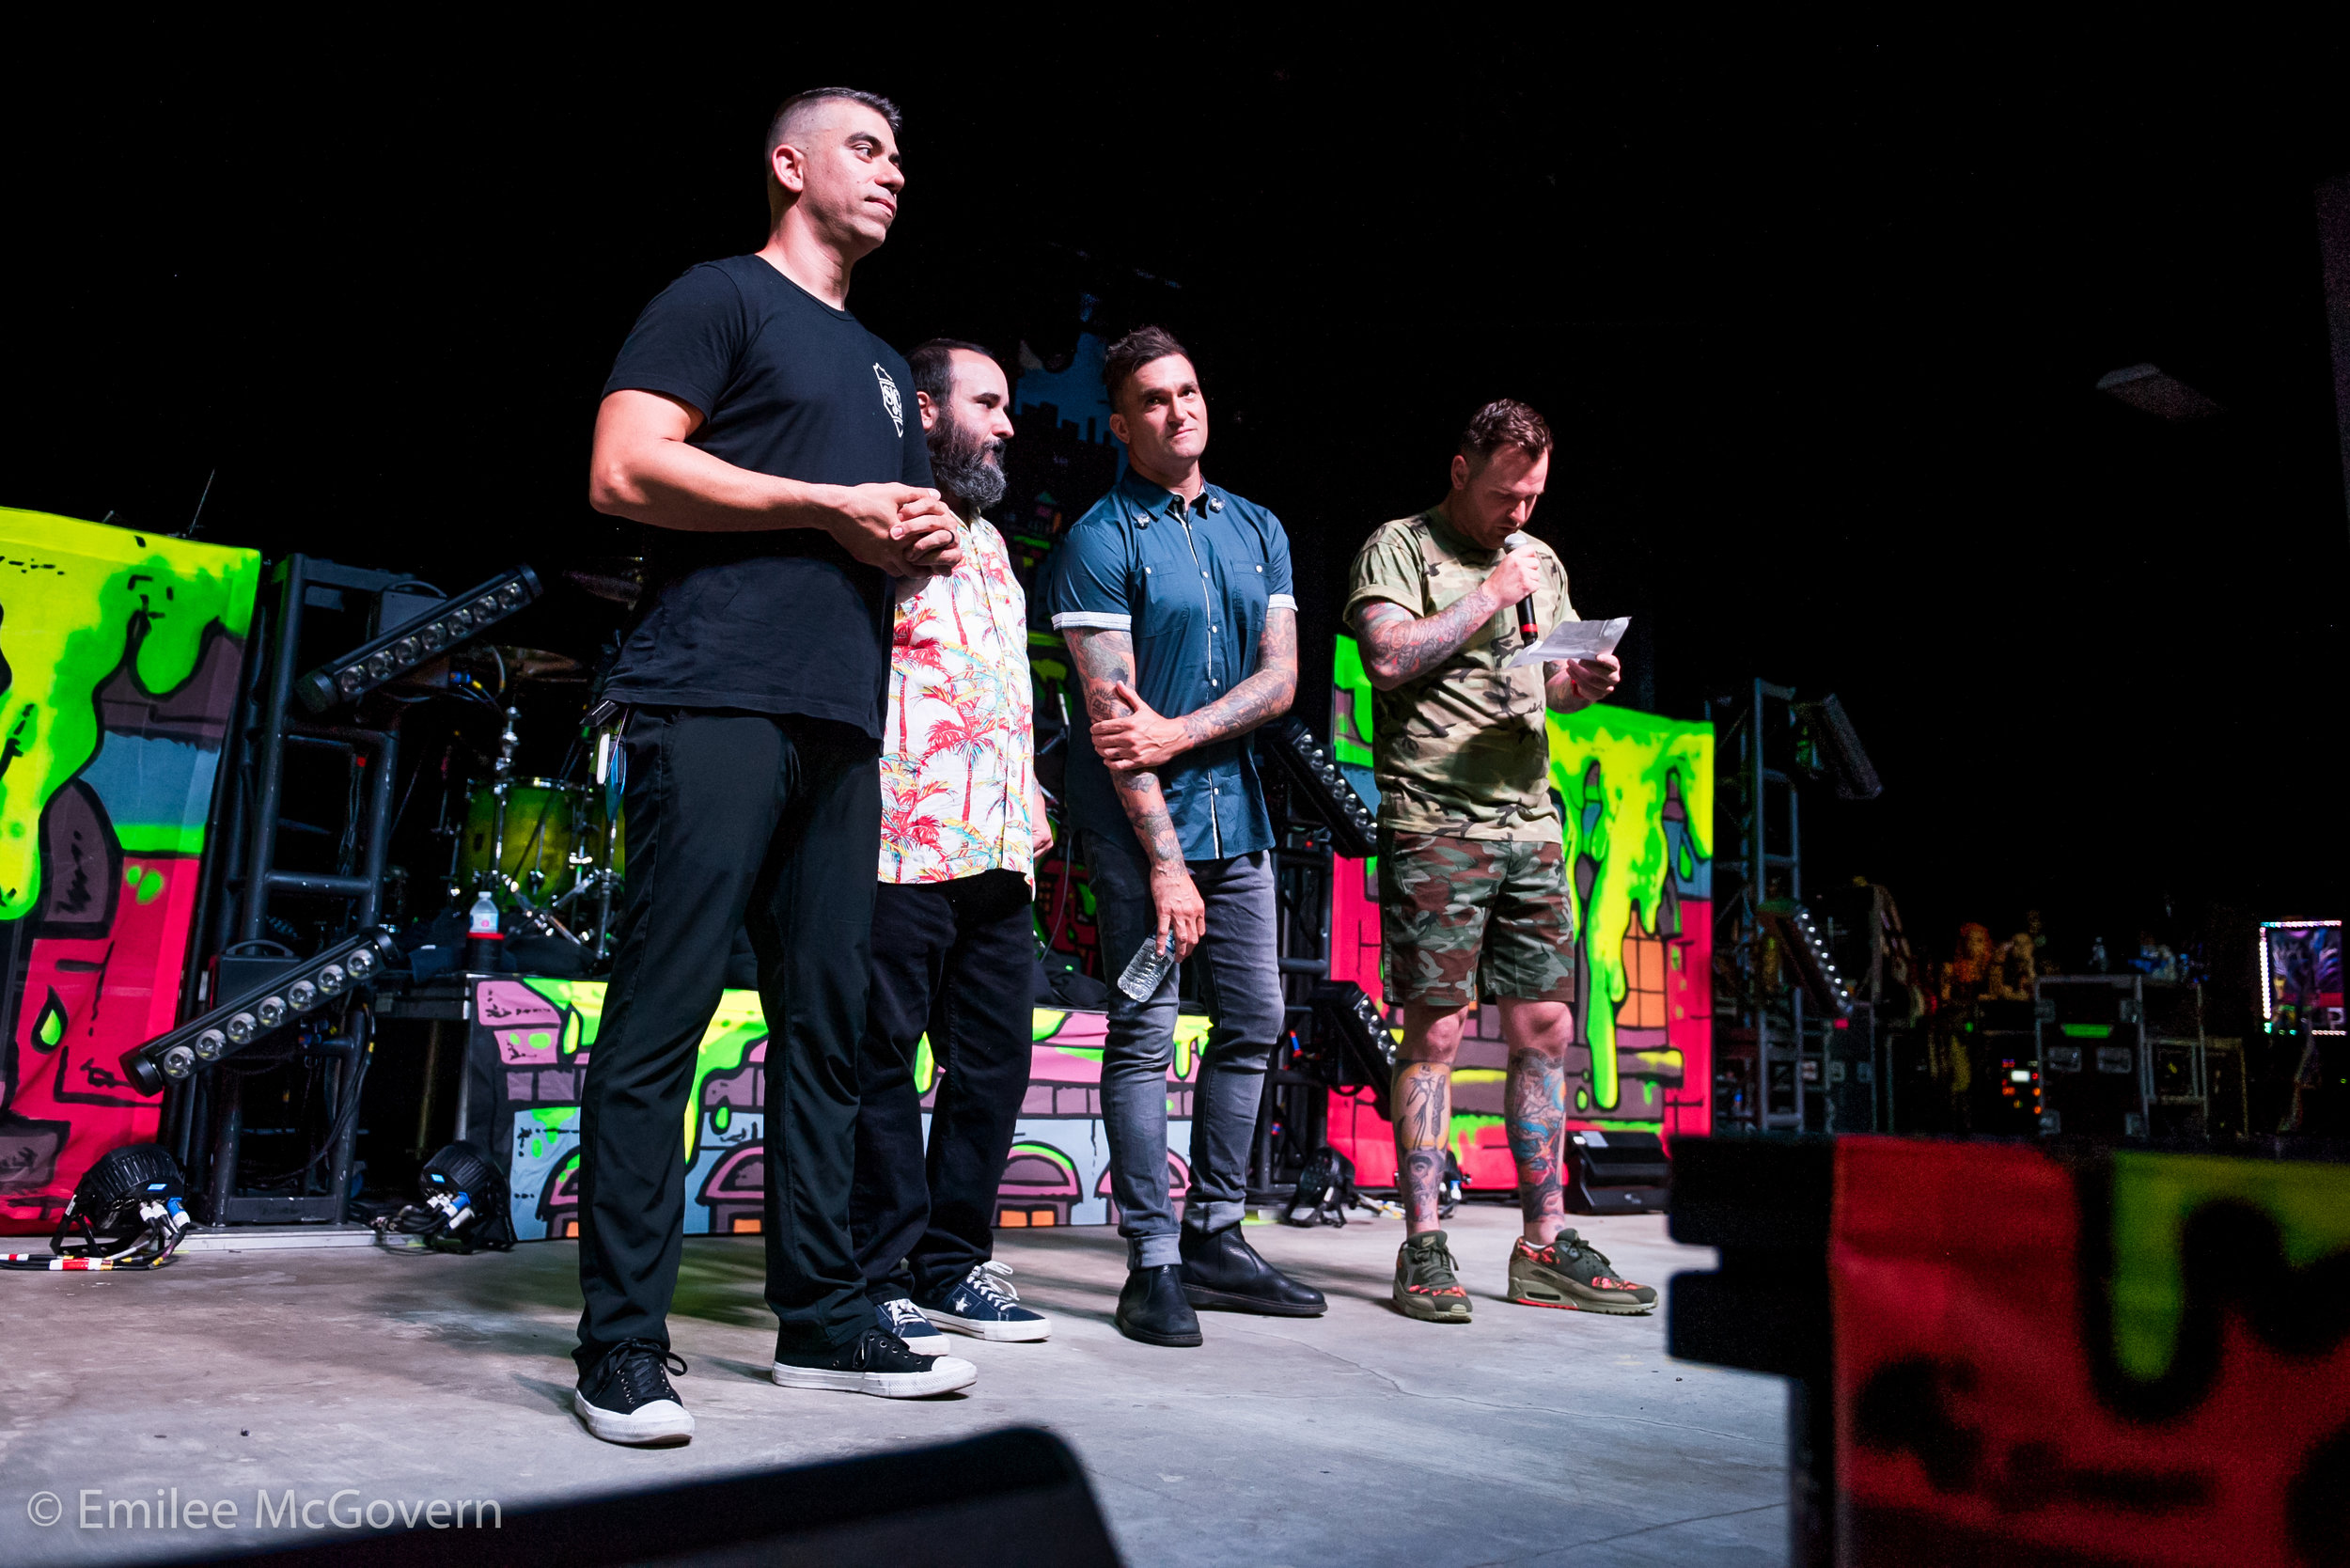 South Florida natives New Found Glory address the crowd at the Parkland Strong Benefit concert that was held to raise money for Marjory Stoneman Douglas victim families, and survivors. 3,000 people attended the soldout show, in support of their community.